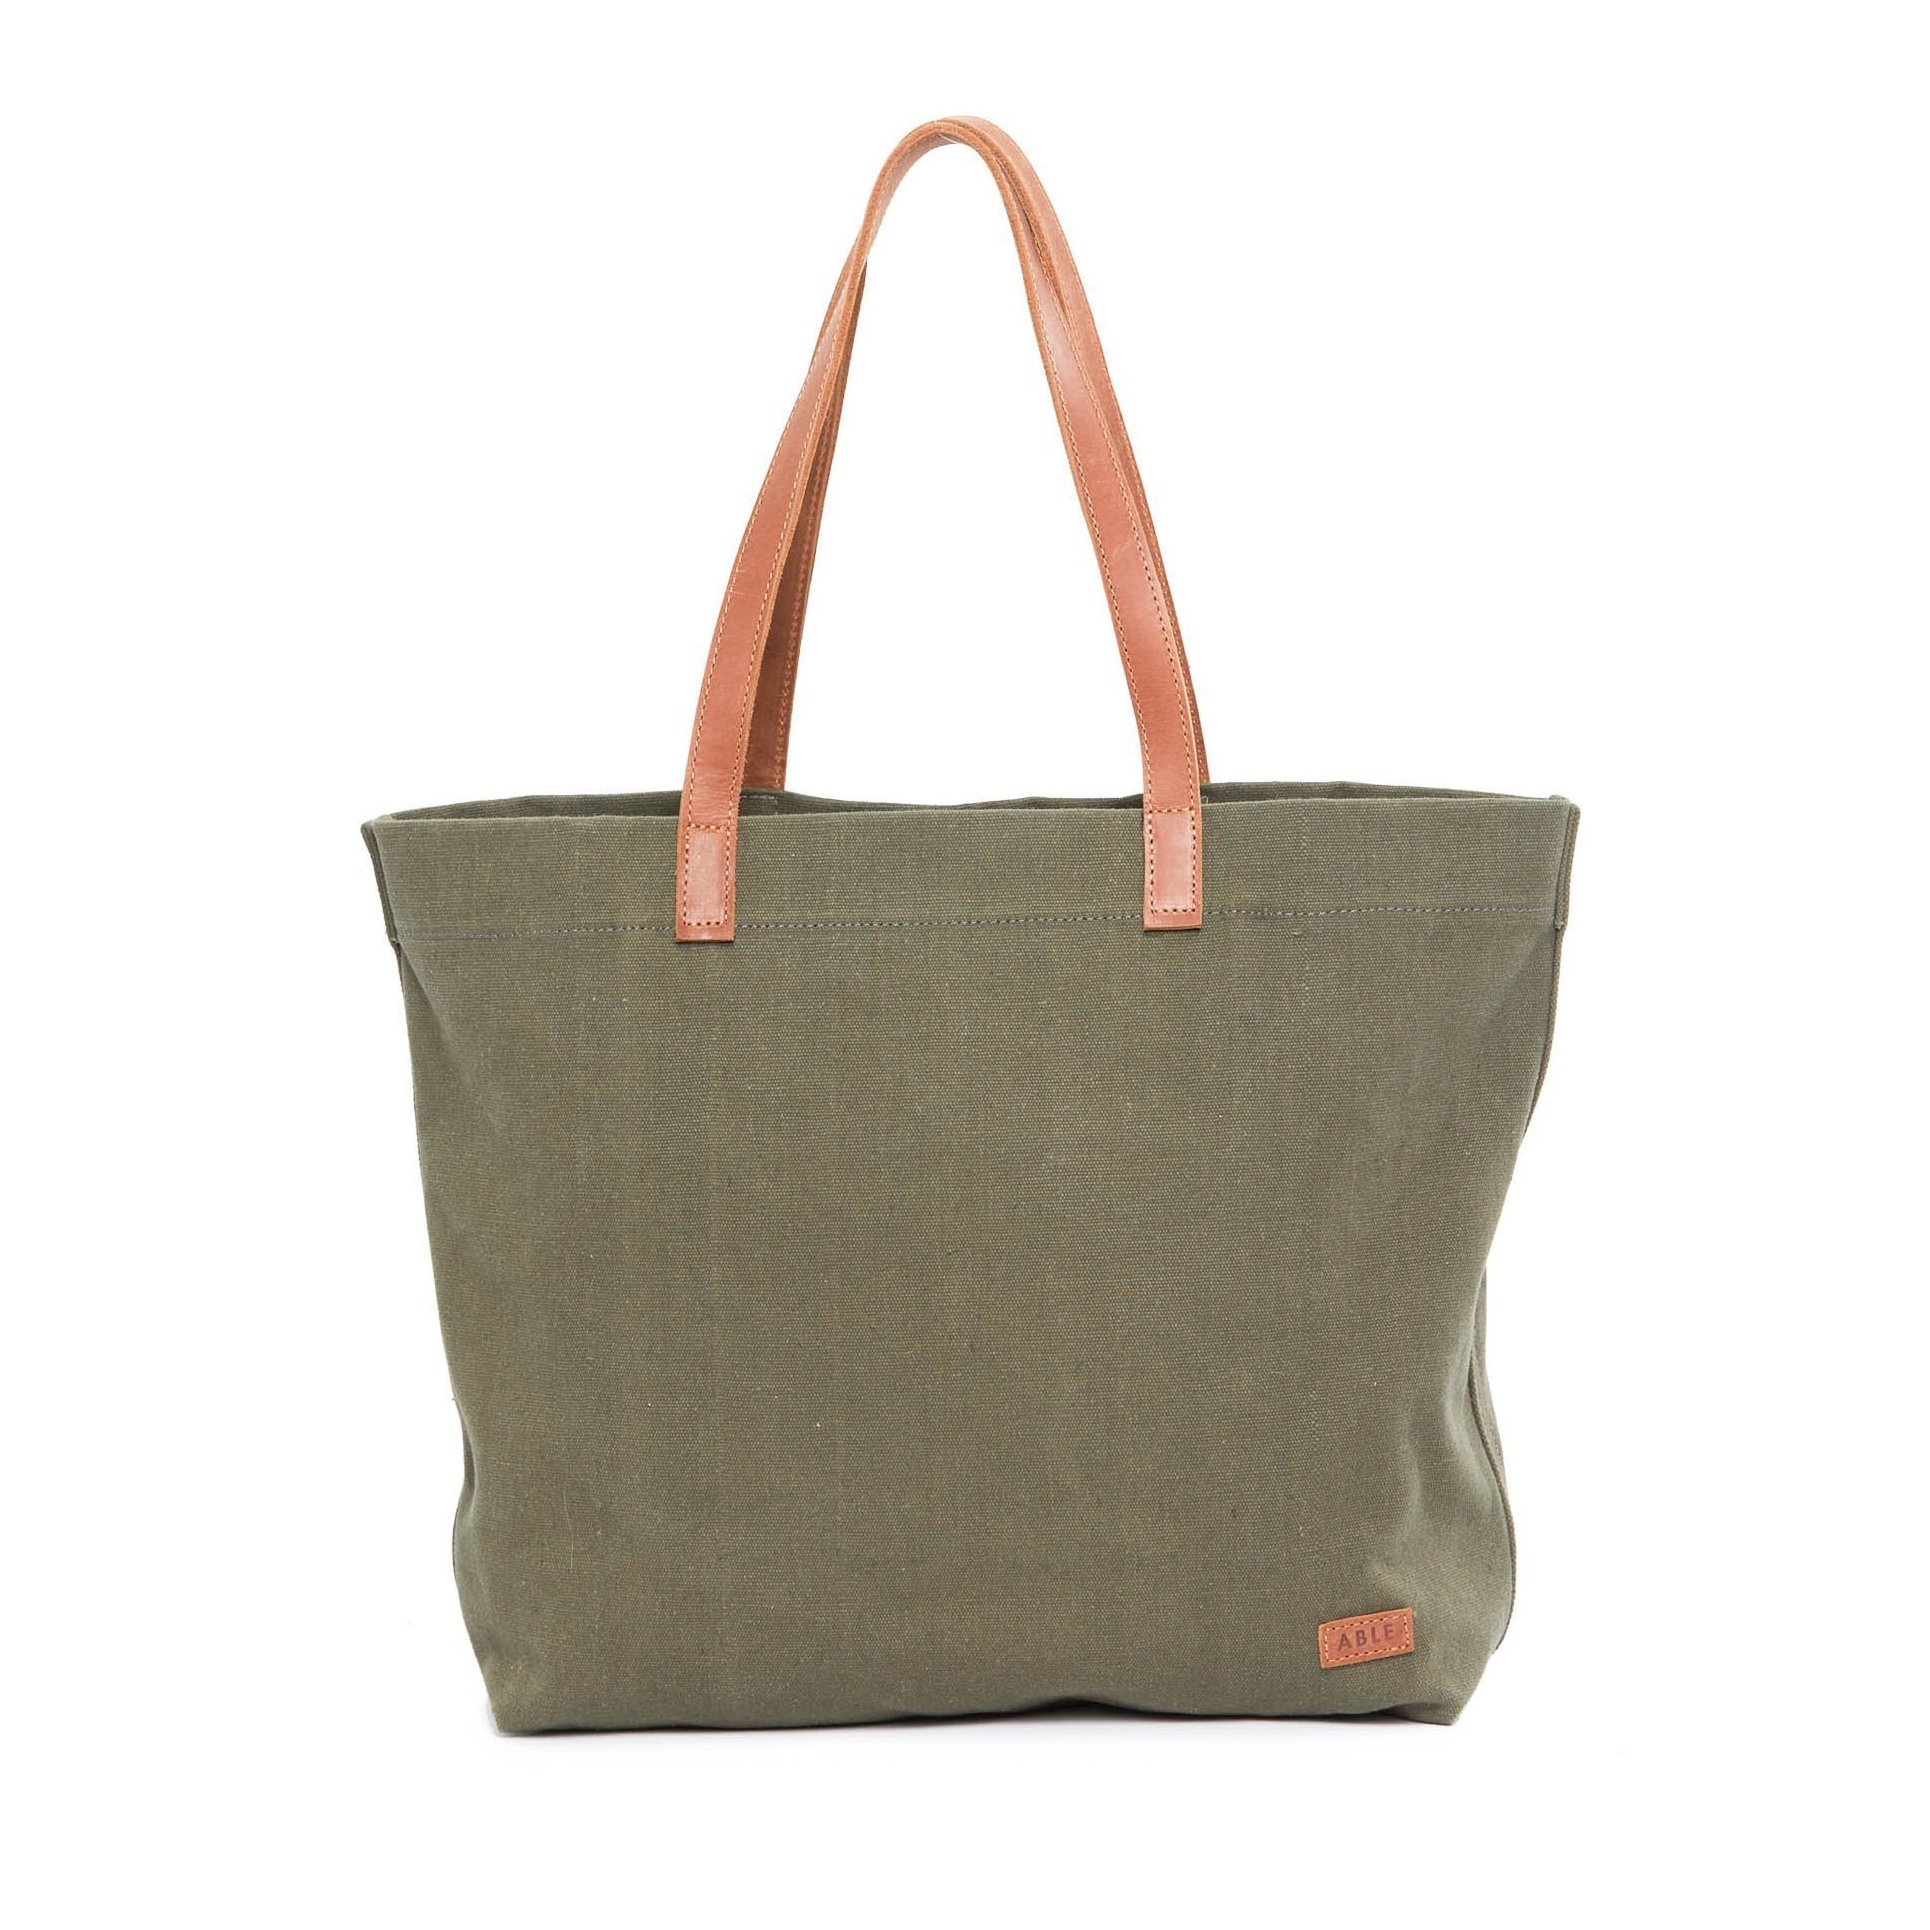 Canvas and leather tote - Ethical, Sustainable Holiday Gift Guide - That Homebird Life Blog